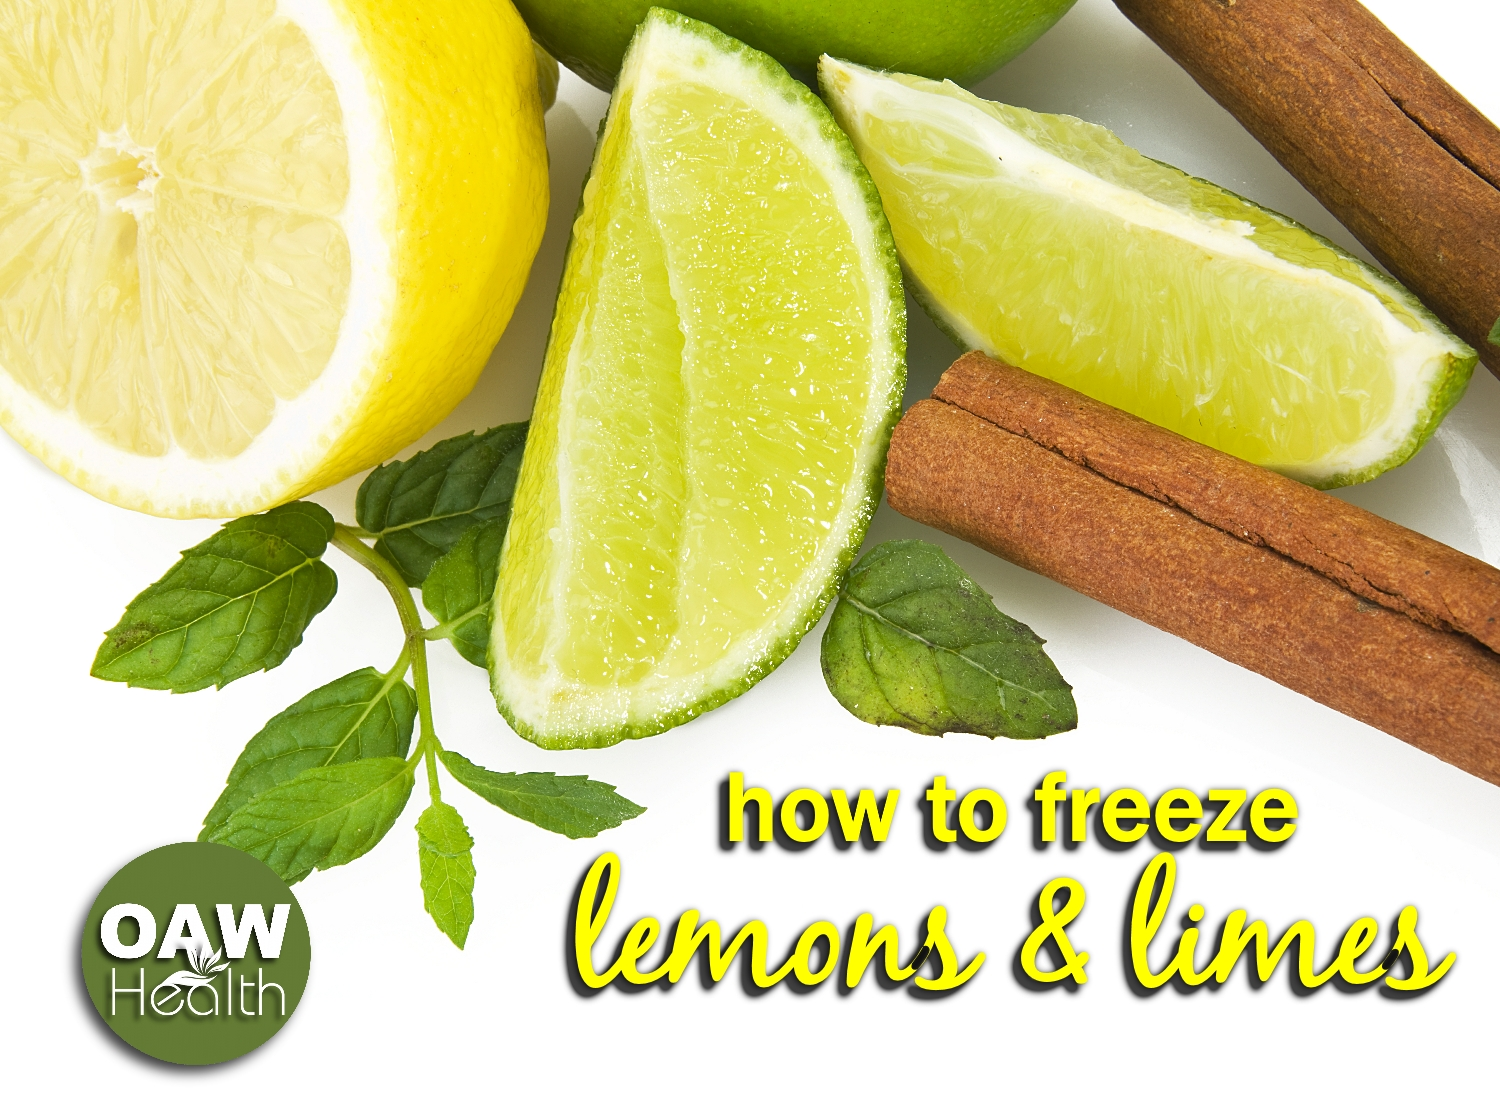 How to Freeze Lemons and Limes